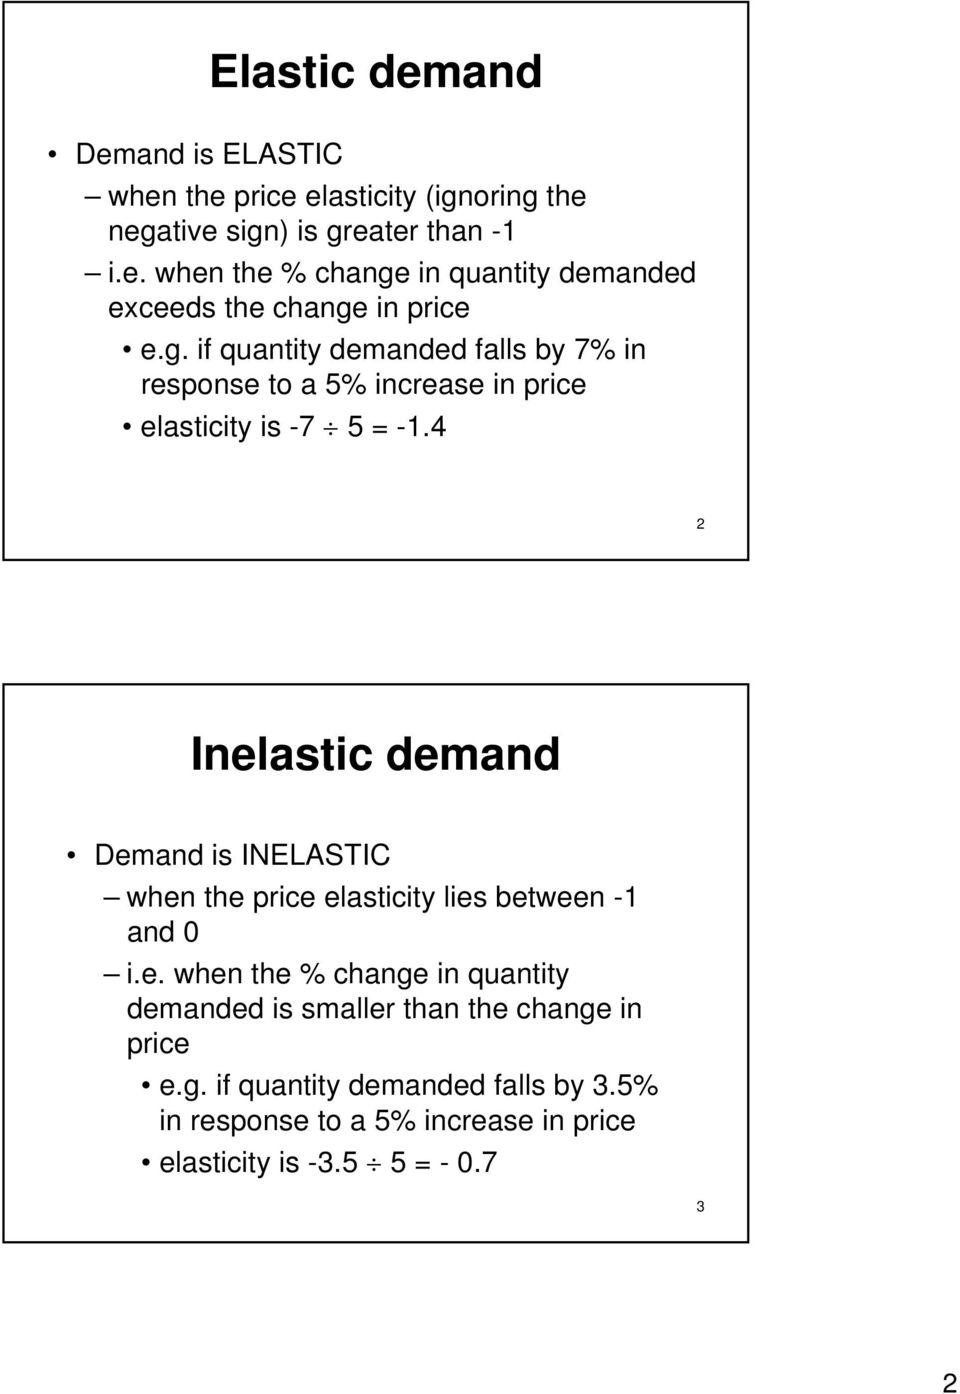 Chapter 4 Elasticities Of Demand And Supply The Price Elasticity